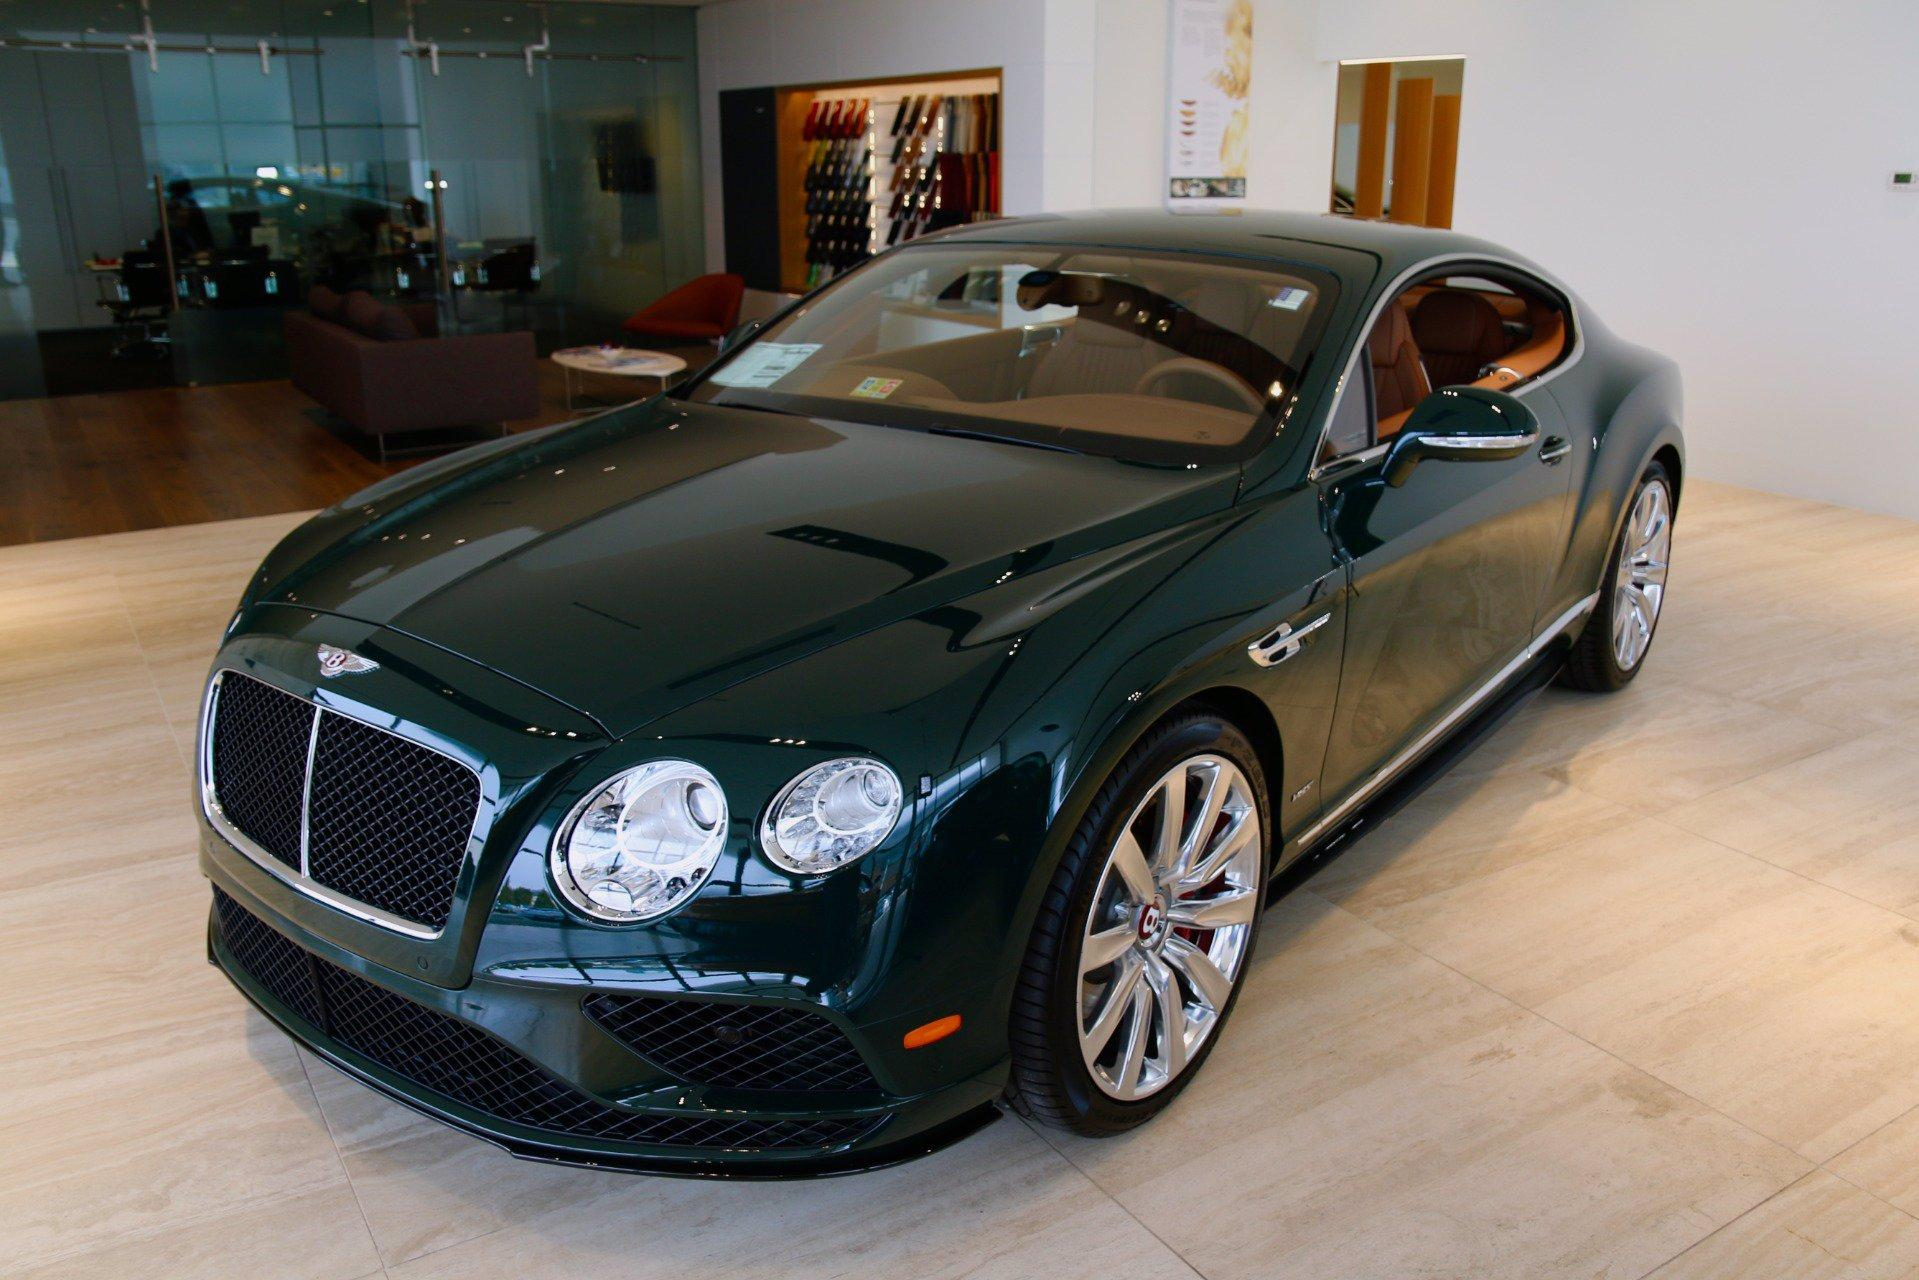 2017 bentley continental gt v8 s stock 7nc061201 for sale near vienna va va bentley dealer. Black Bedroom Furniture Sets. Home Design Ideas